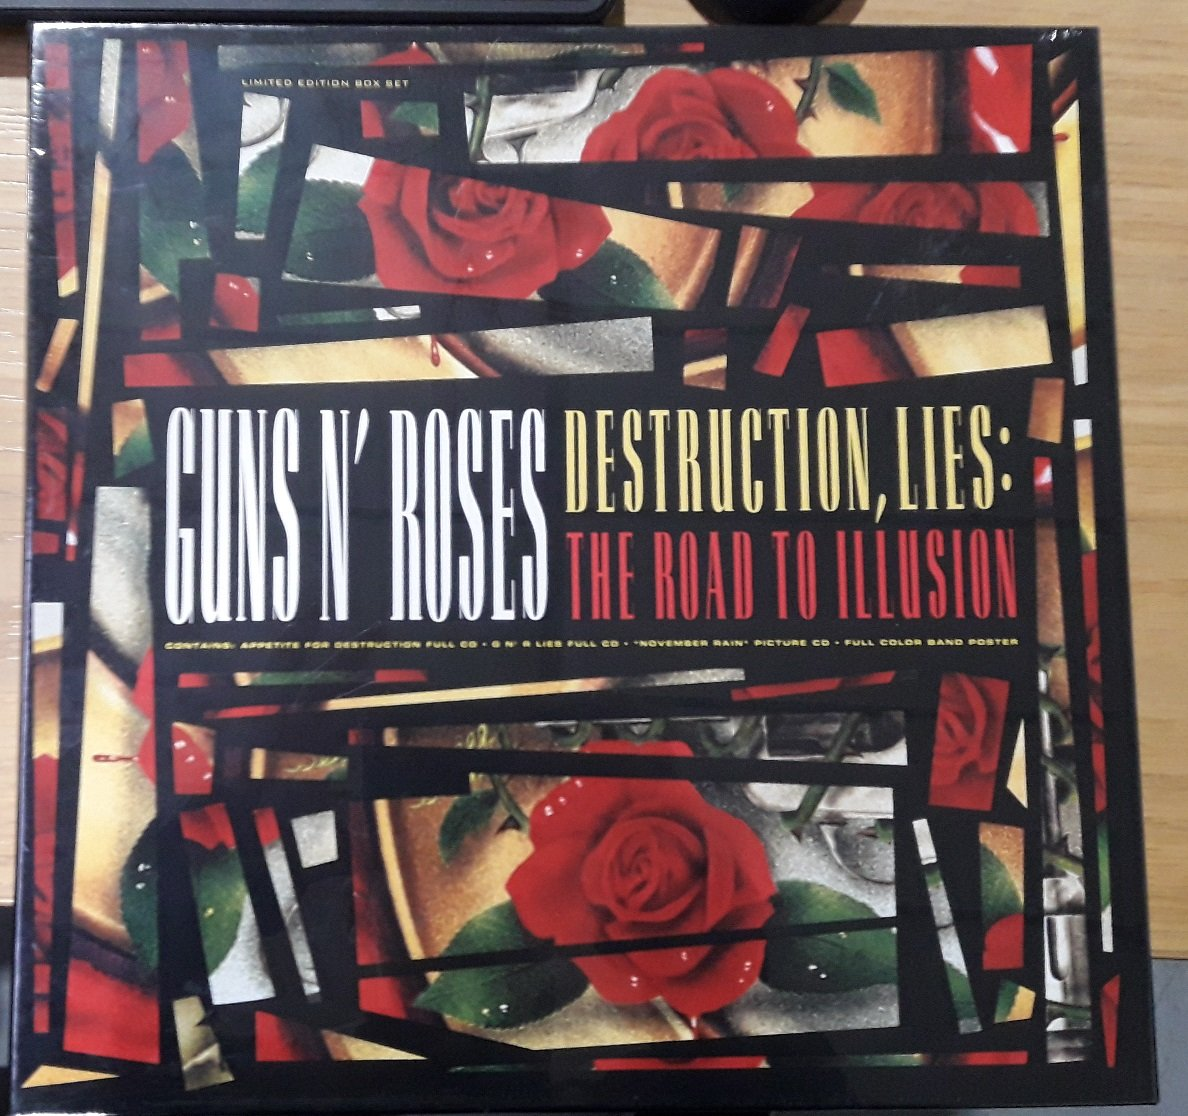 Guns N Roses-Destruction Lies The Road To Illusion-(GEFD-24434)-Limited Edition Boxset-2CD-FLAC-1992-RUiL